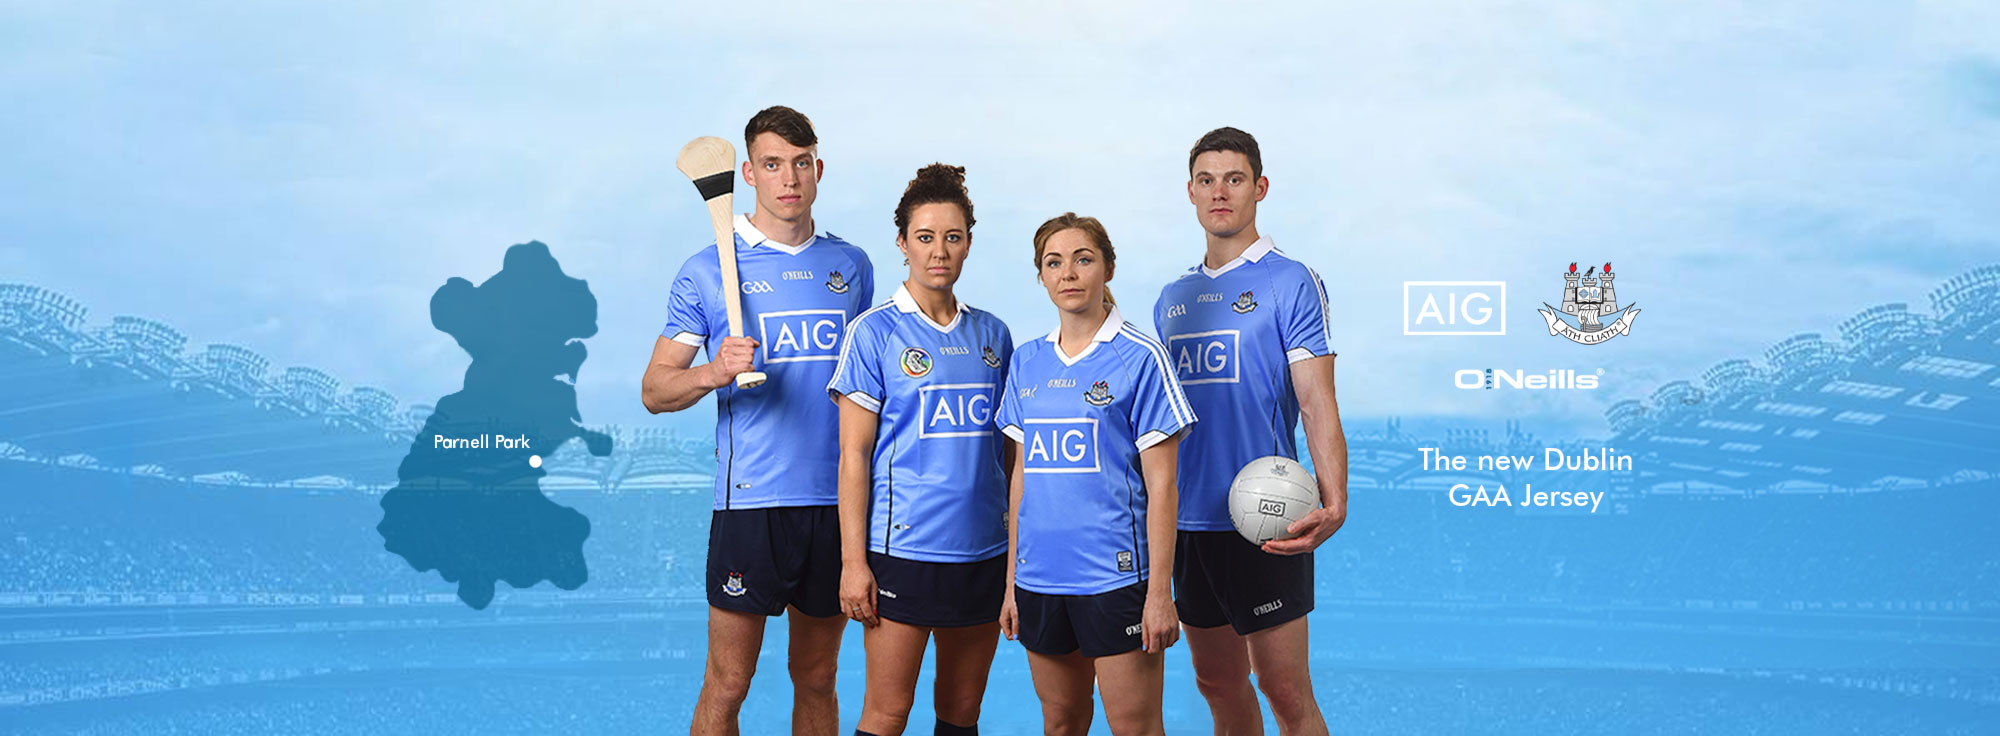 The New Dublin Jersey 2016